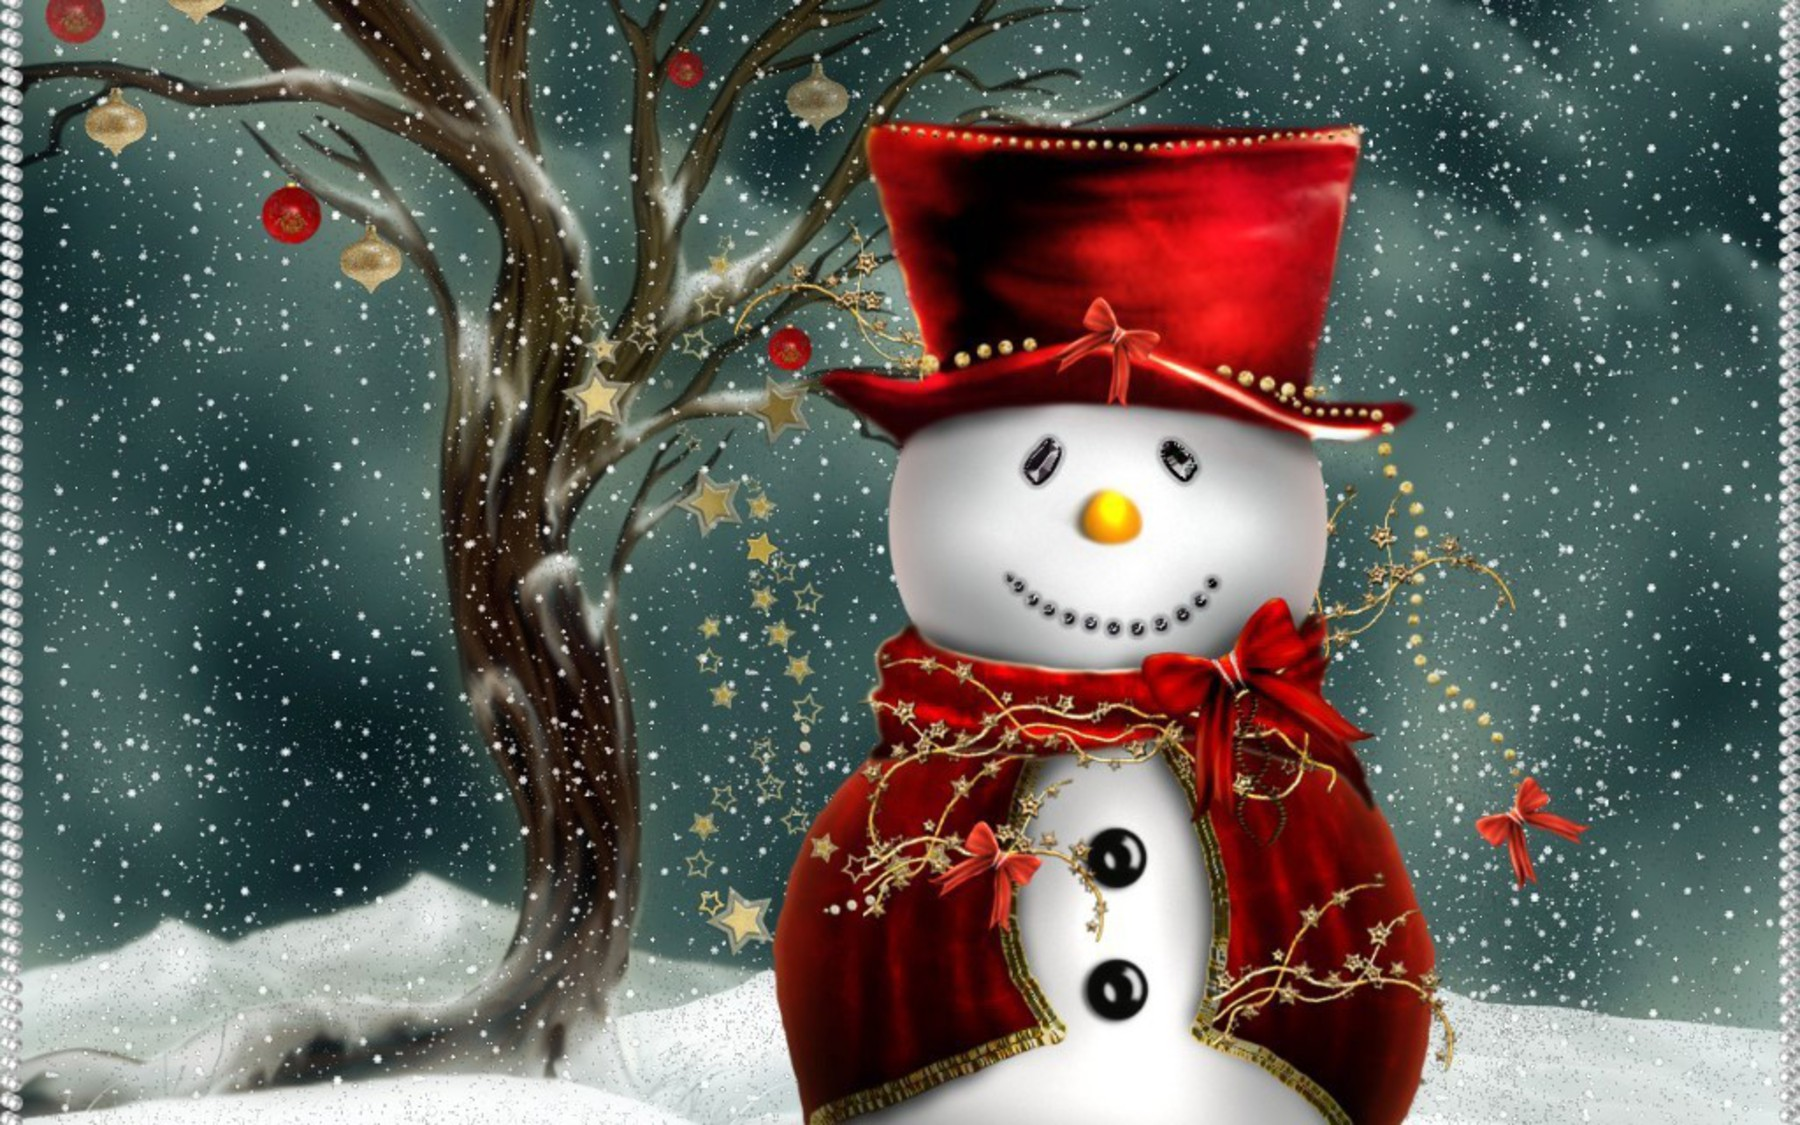 Adorable Christmas Snowman wallpaper Wallpapers   HD Wallpapers 1800x1125